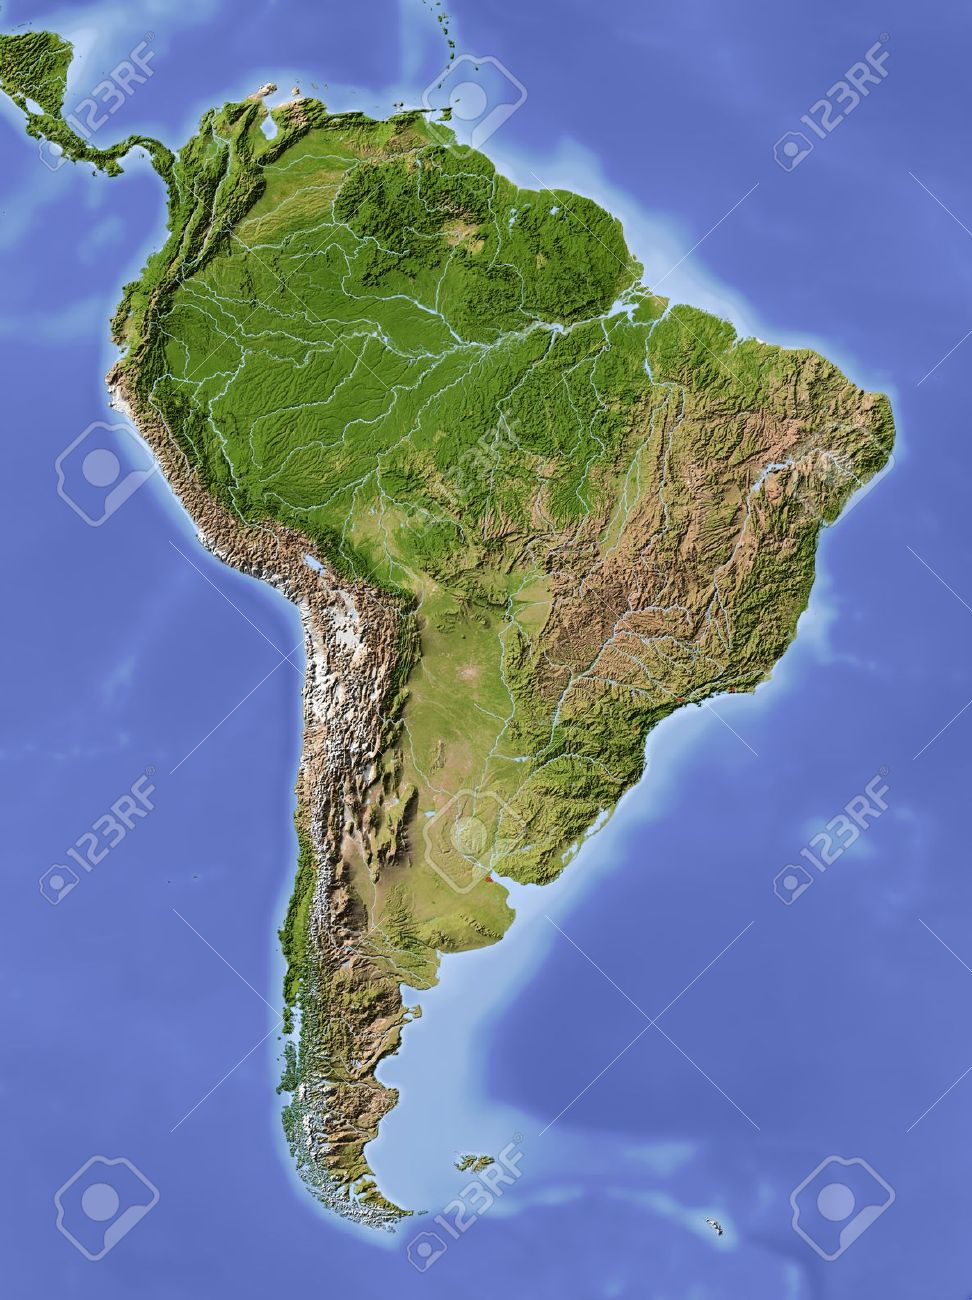 South America Shaded Relief Map Colored According To Vegetation - South america relief map peru